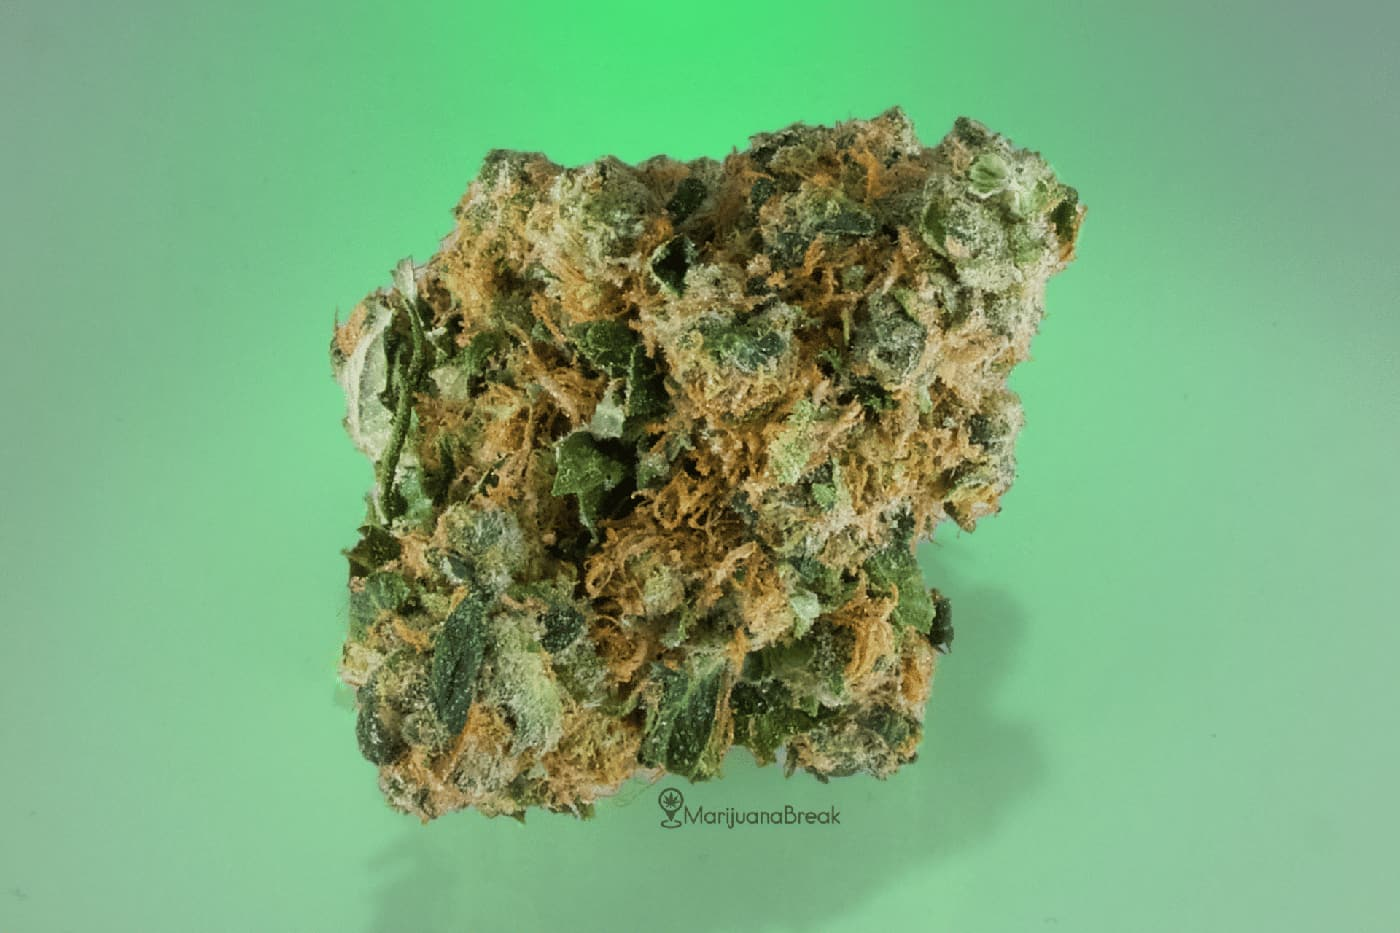 Headband (The Brain Fog Marijuana Strain)